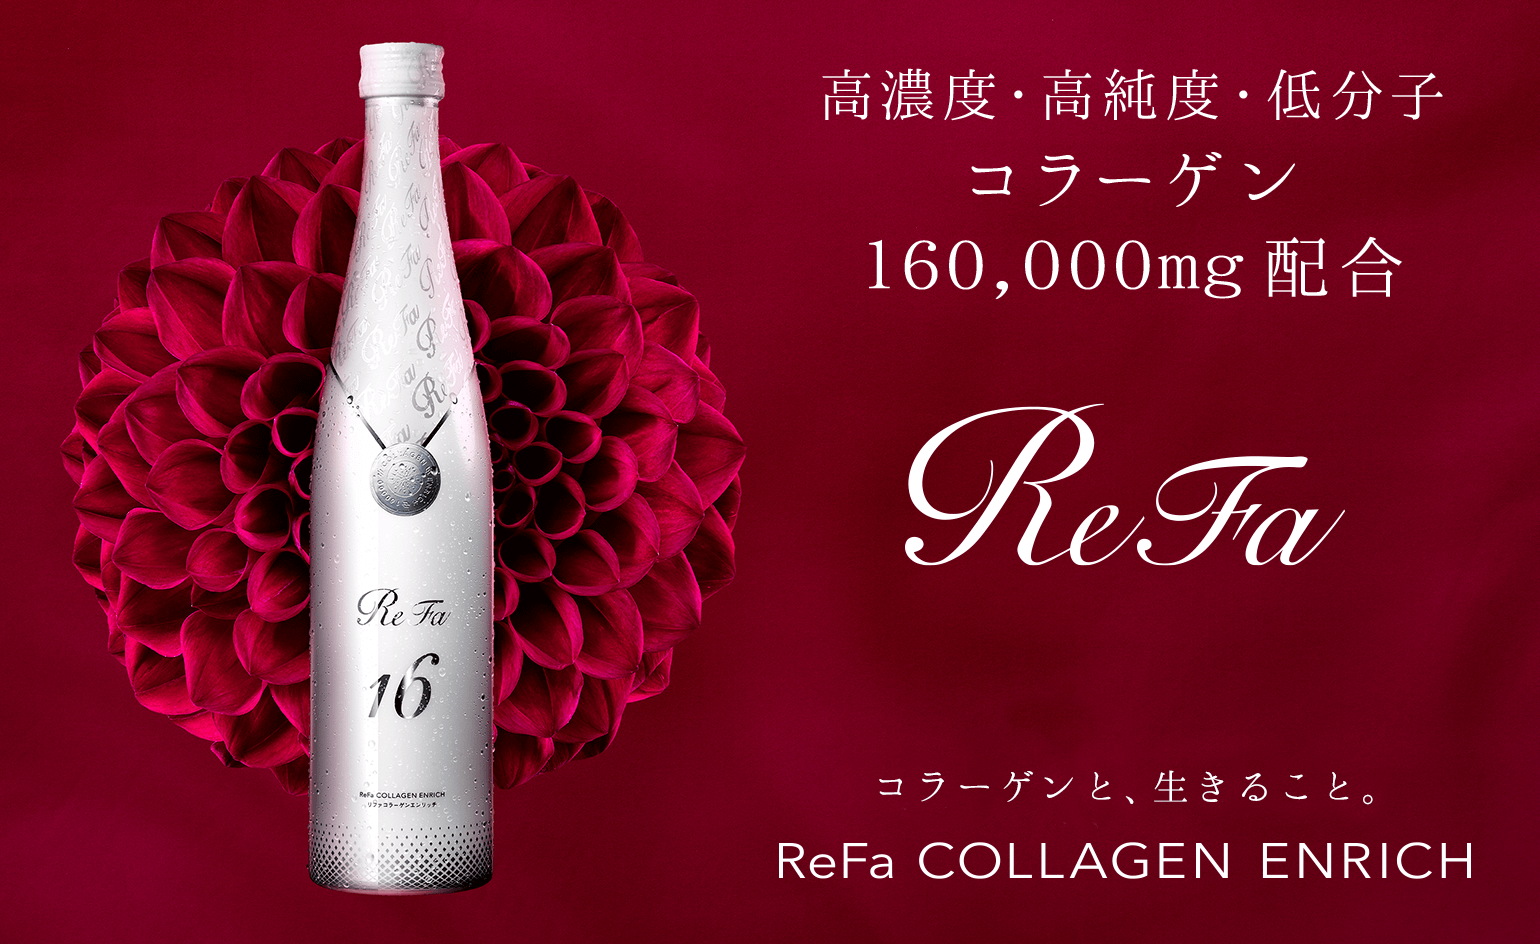 ReFa COLLAGEN ENRISH